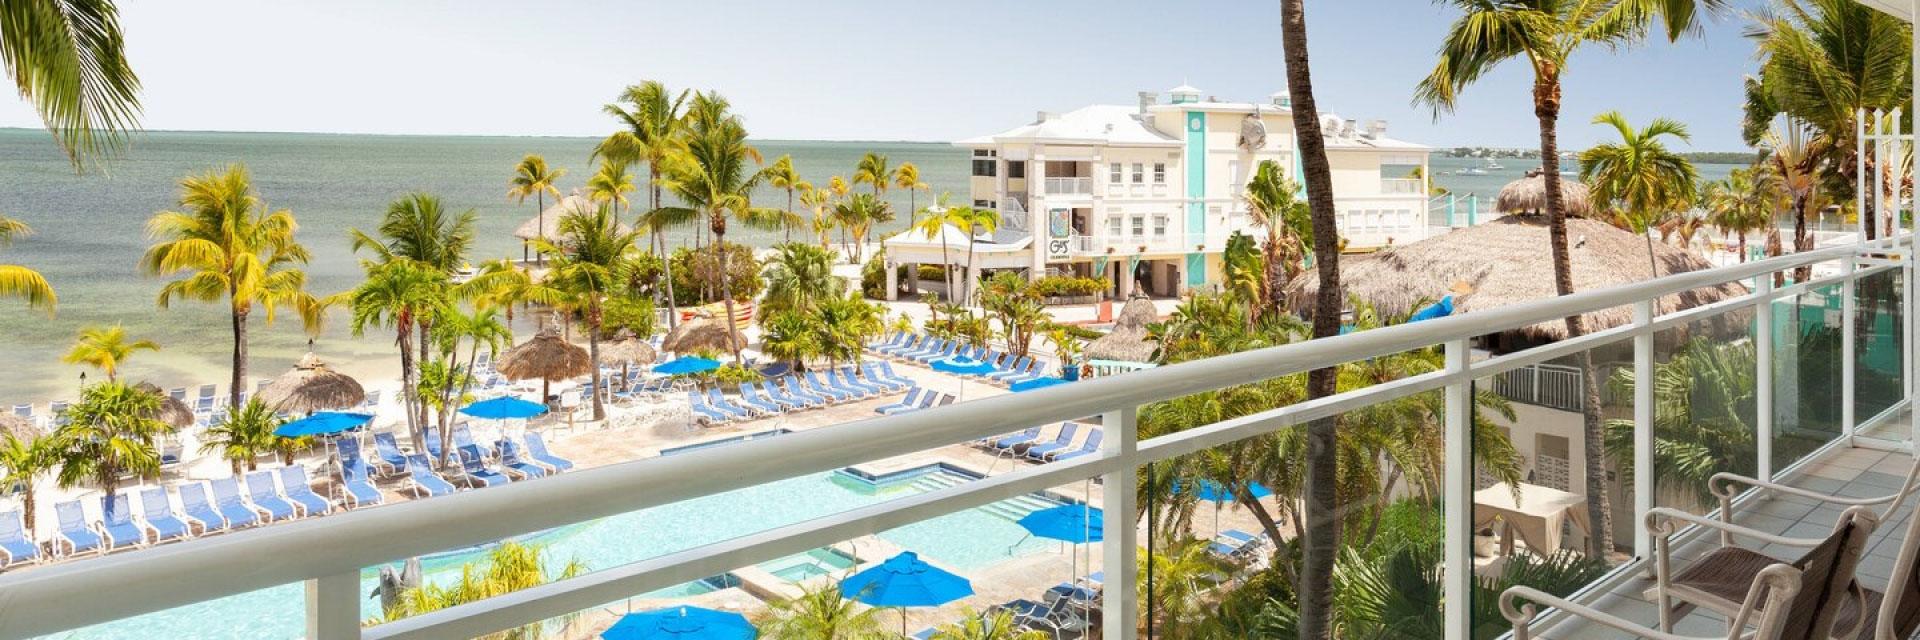 Marriott Key Largo Beach Resort